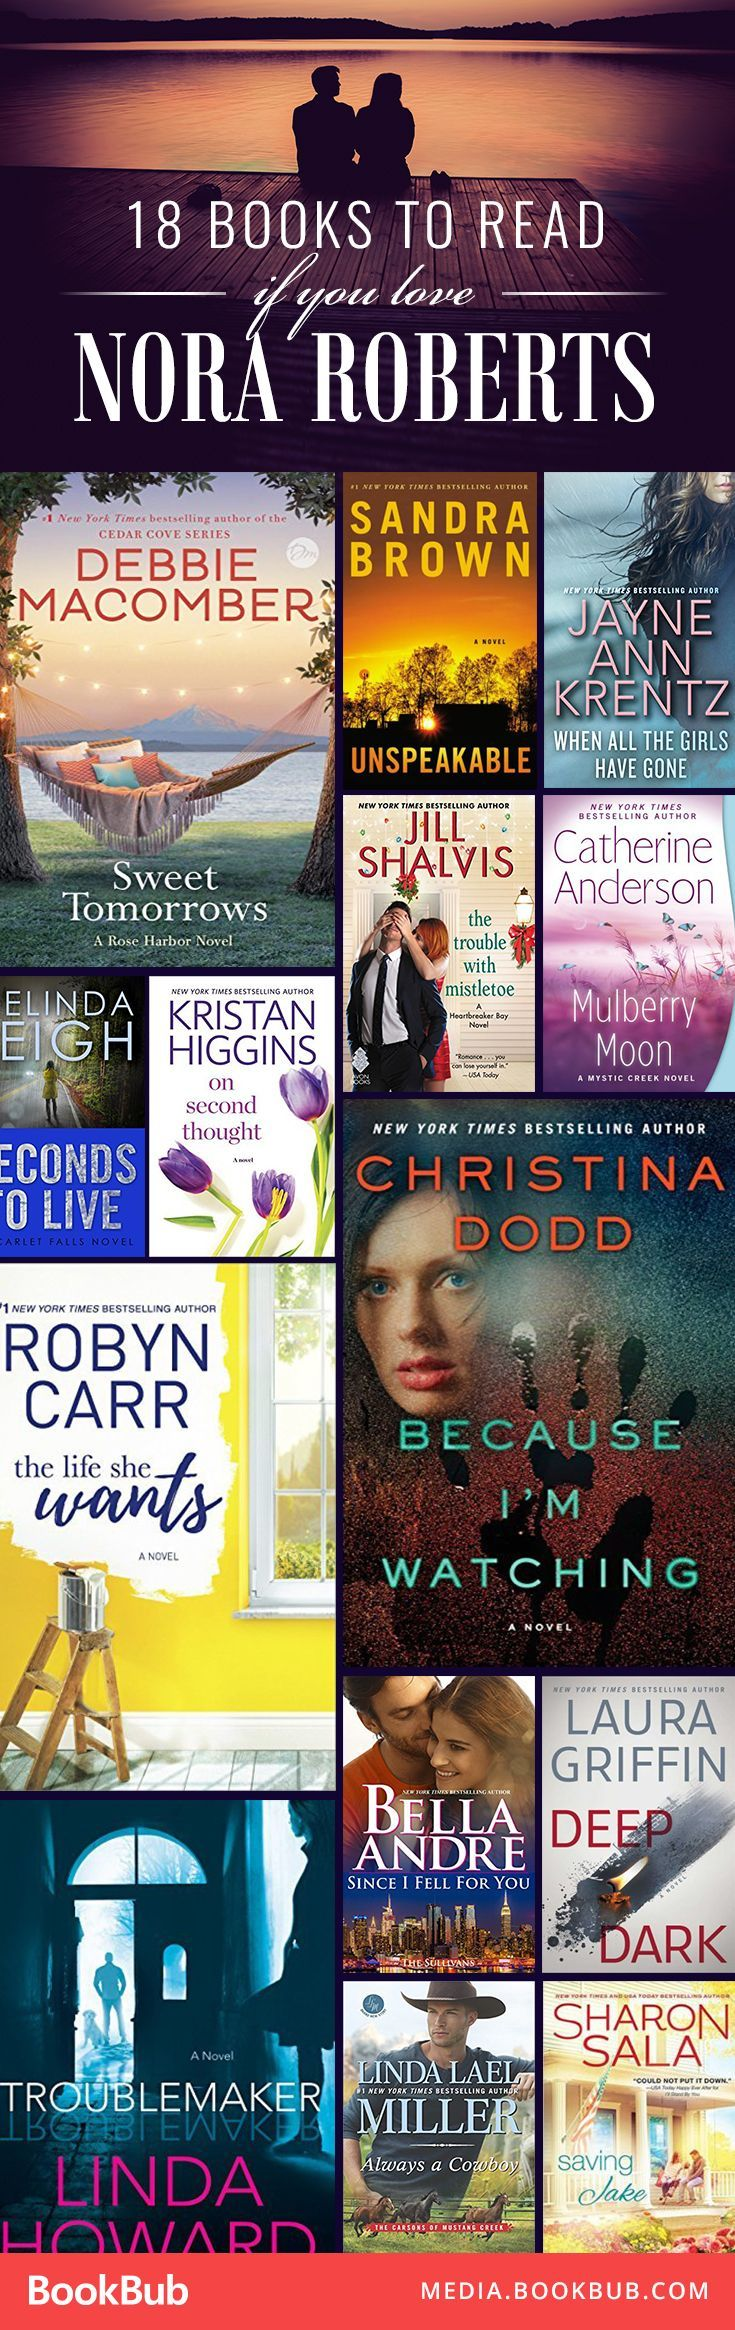 2912 best all about books images on pinterest thoughts book 18 books for your wishlist if you love nora roberts fandeluxe Images